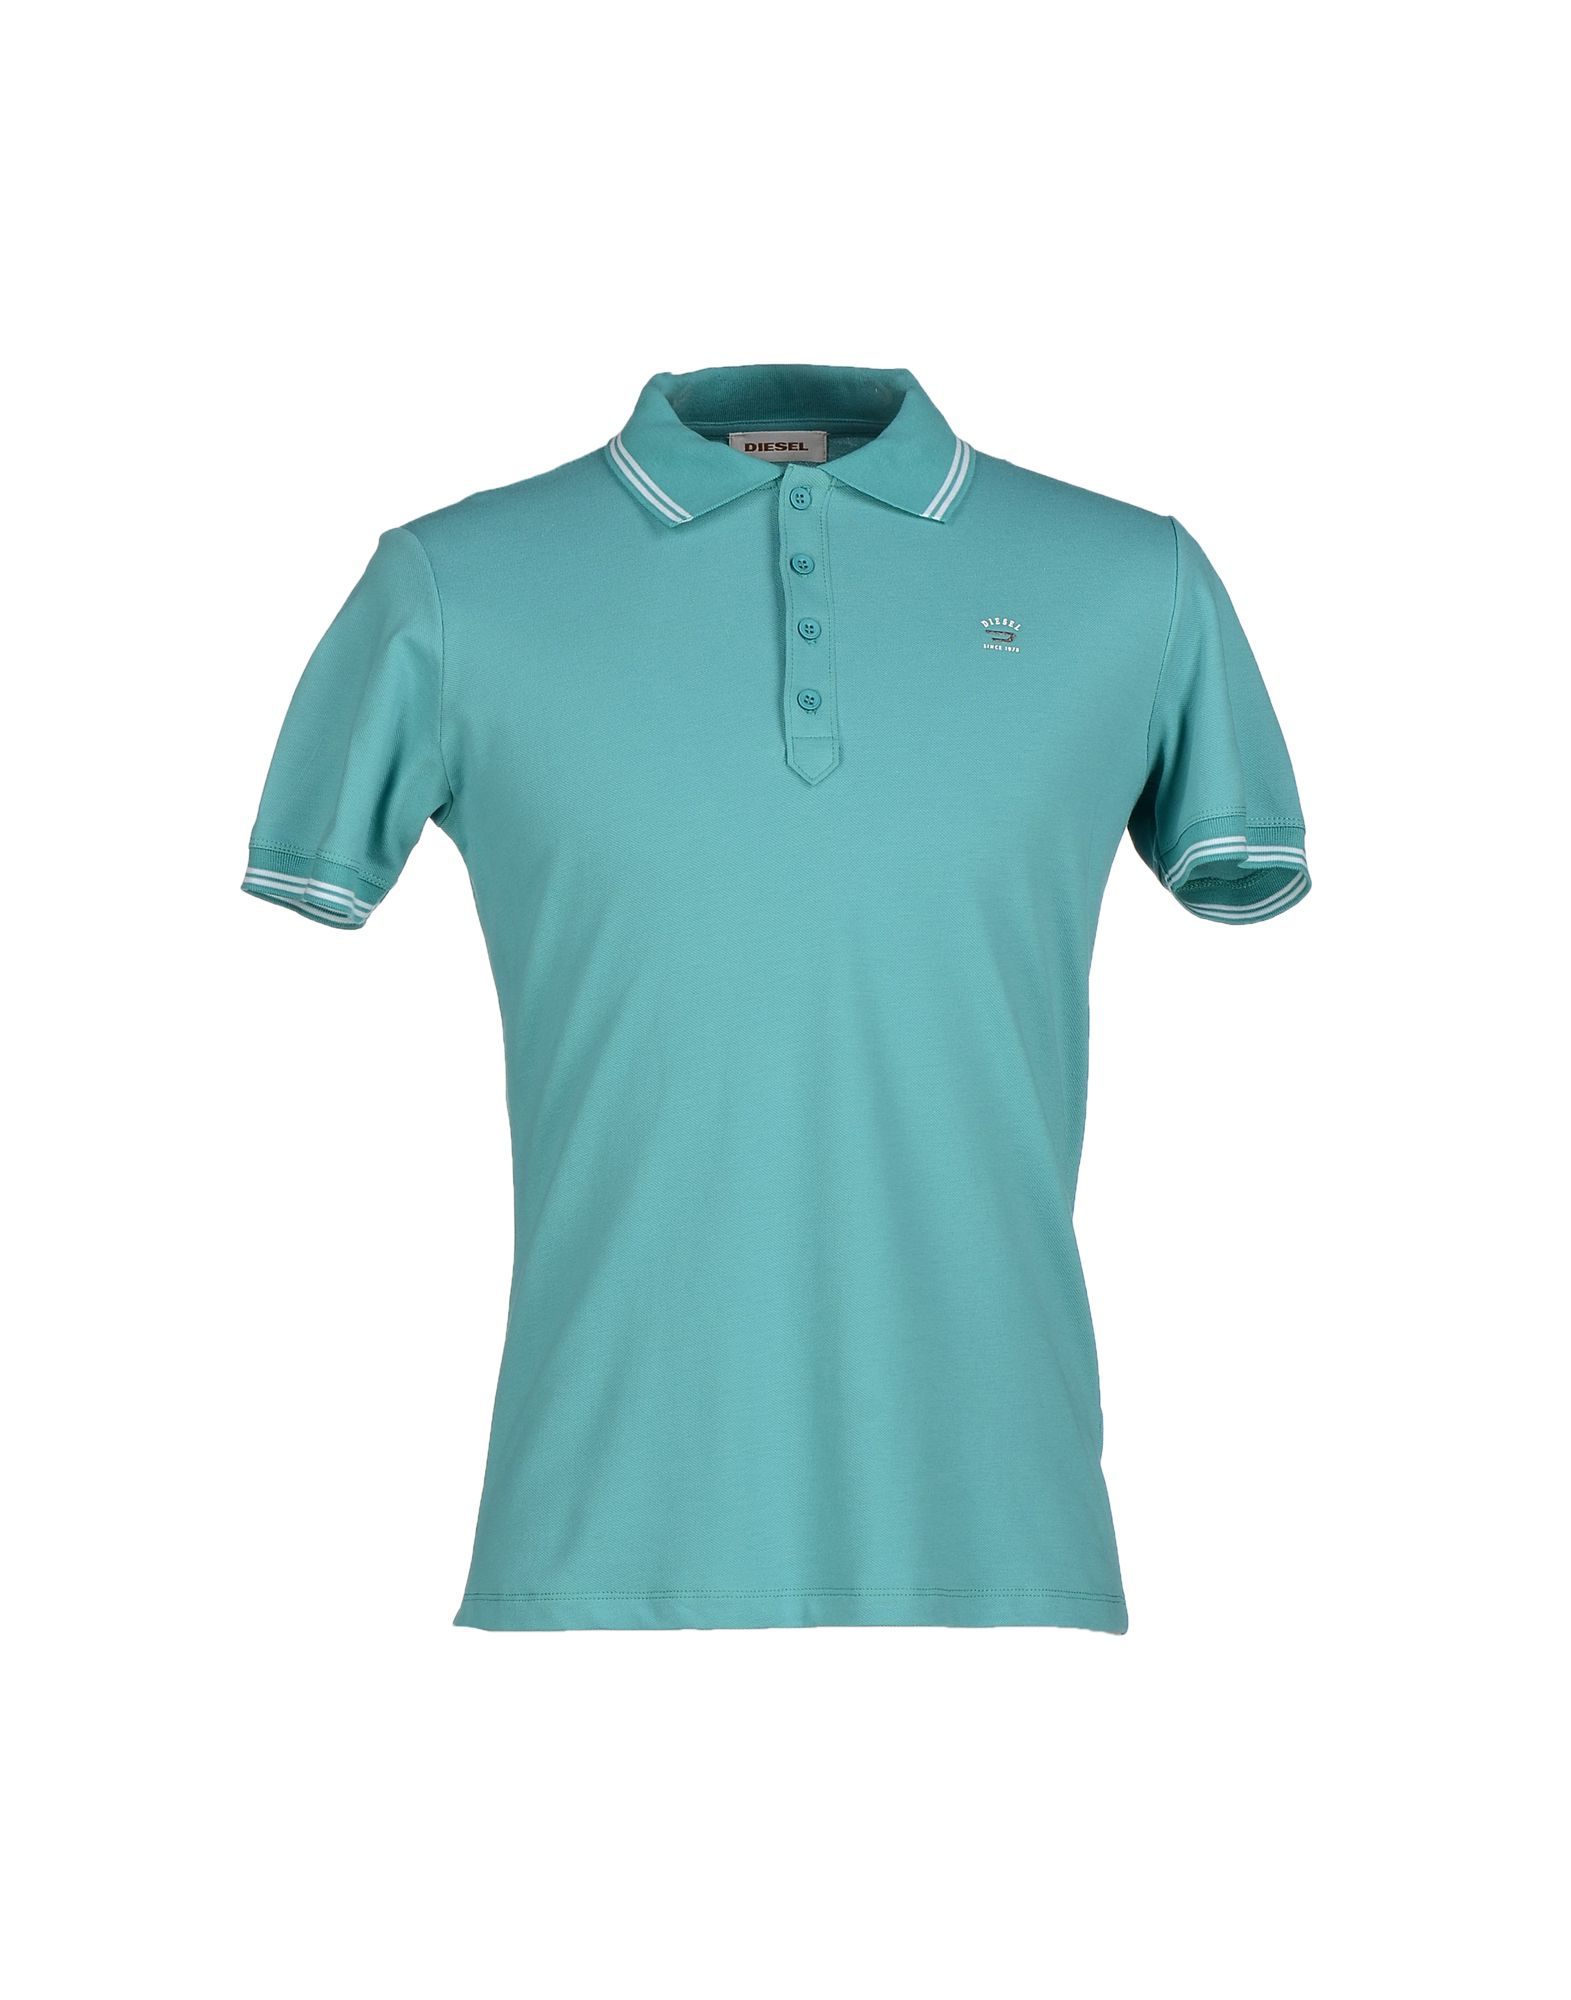 Diesel polo shirt in teal for men turquoise lyst for Mens teal polo shirt